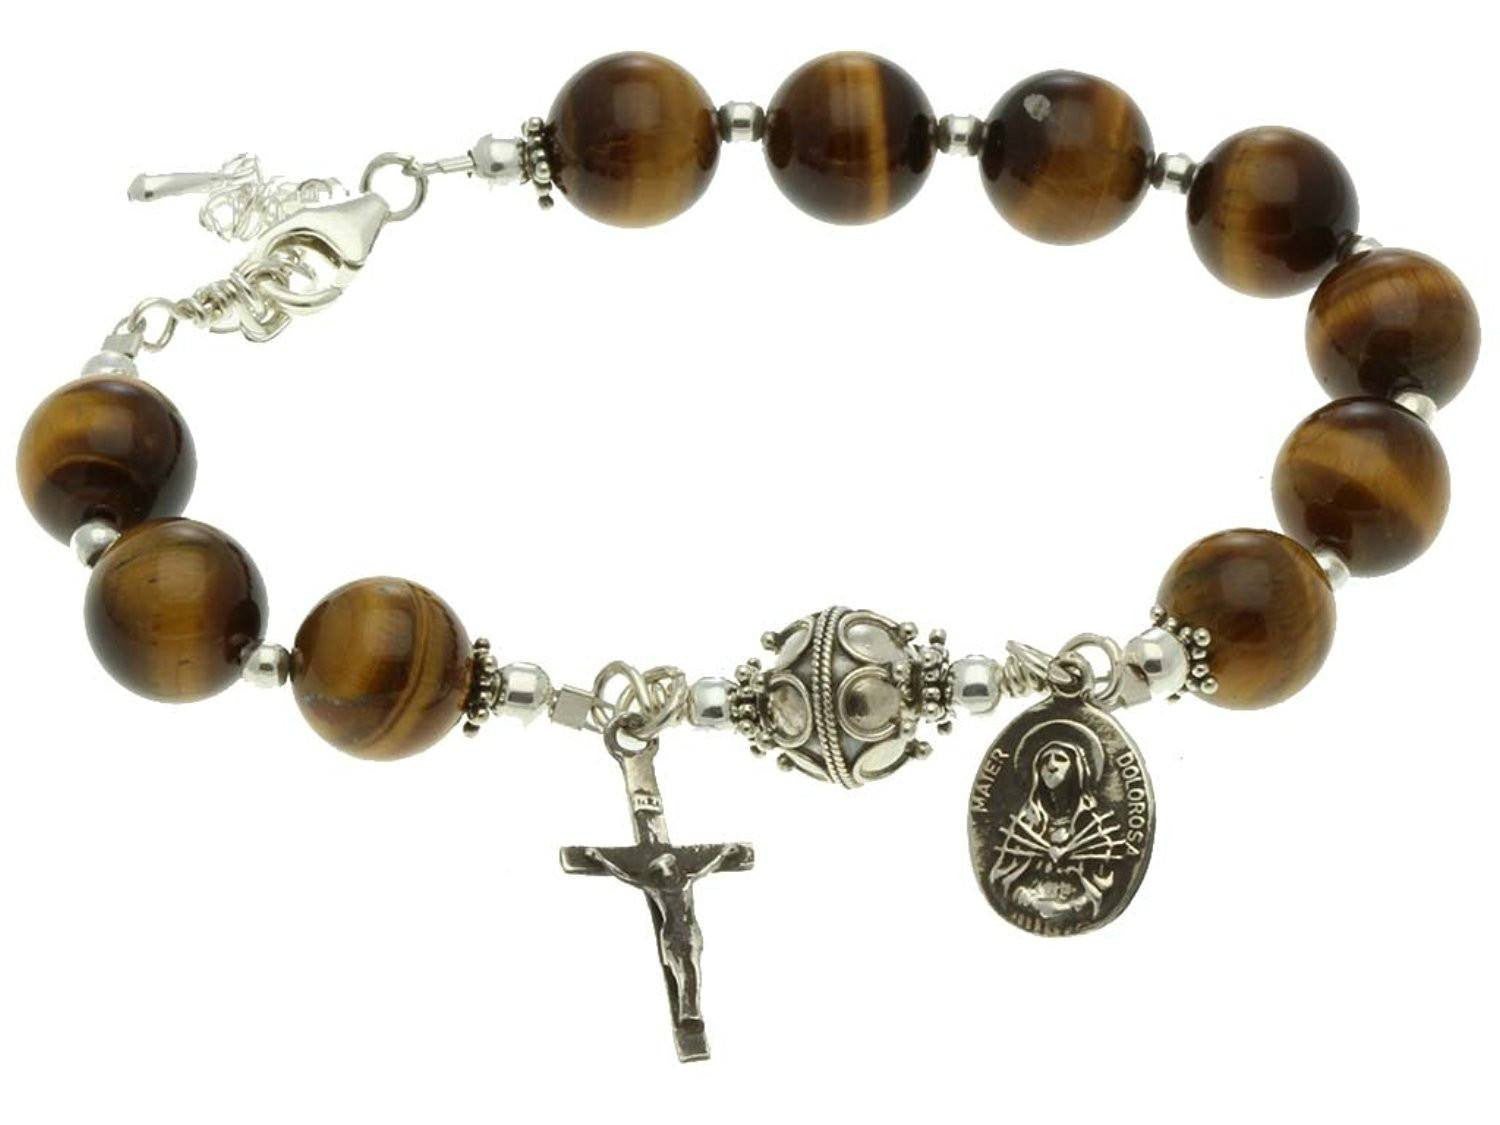 Sterling Silver 7 Sorrows Rosary Bracelet, Tiger Eyes 10mm, Crucifix